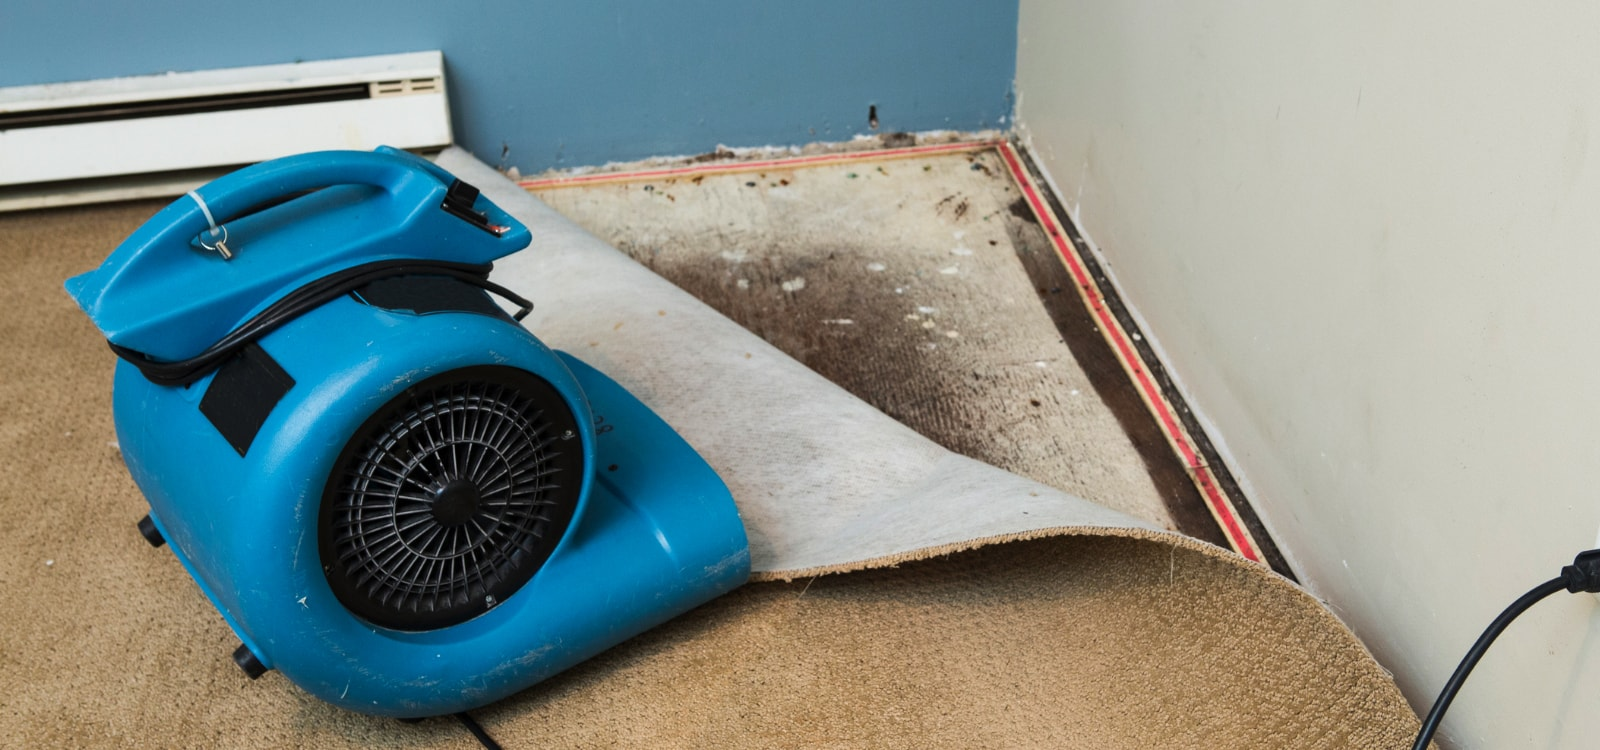 drying carpet after carpet cleaning service